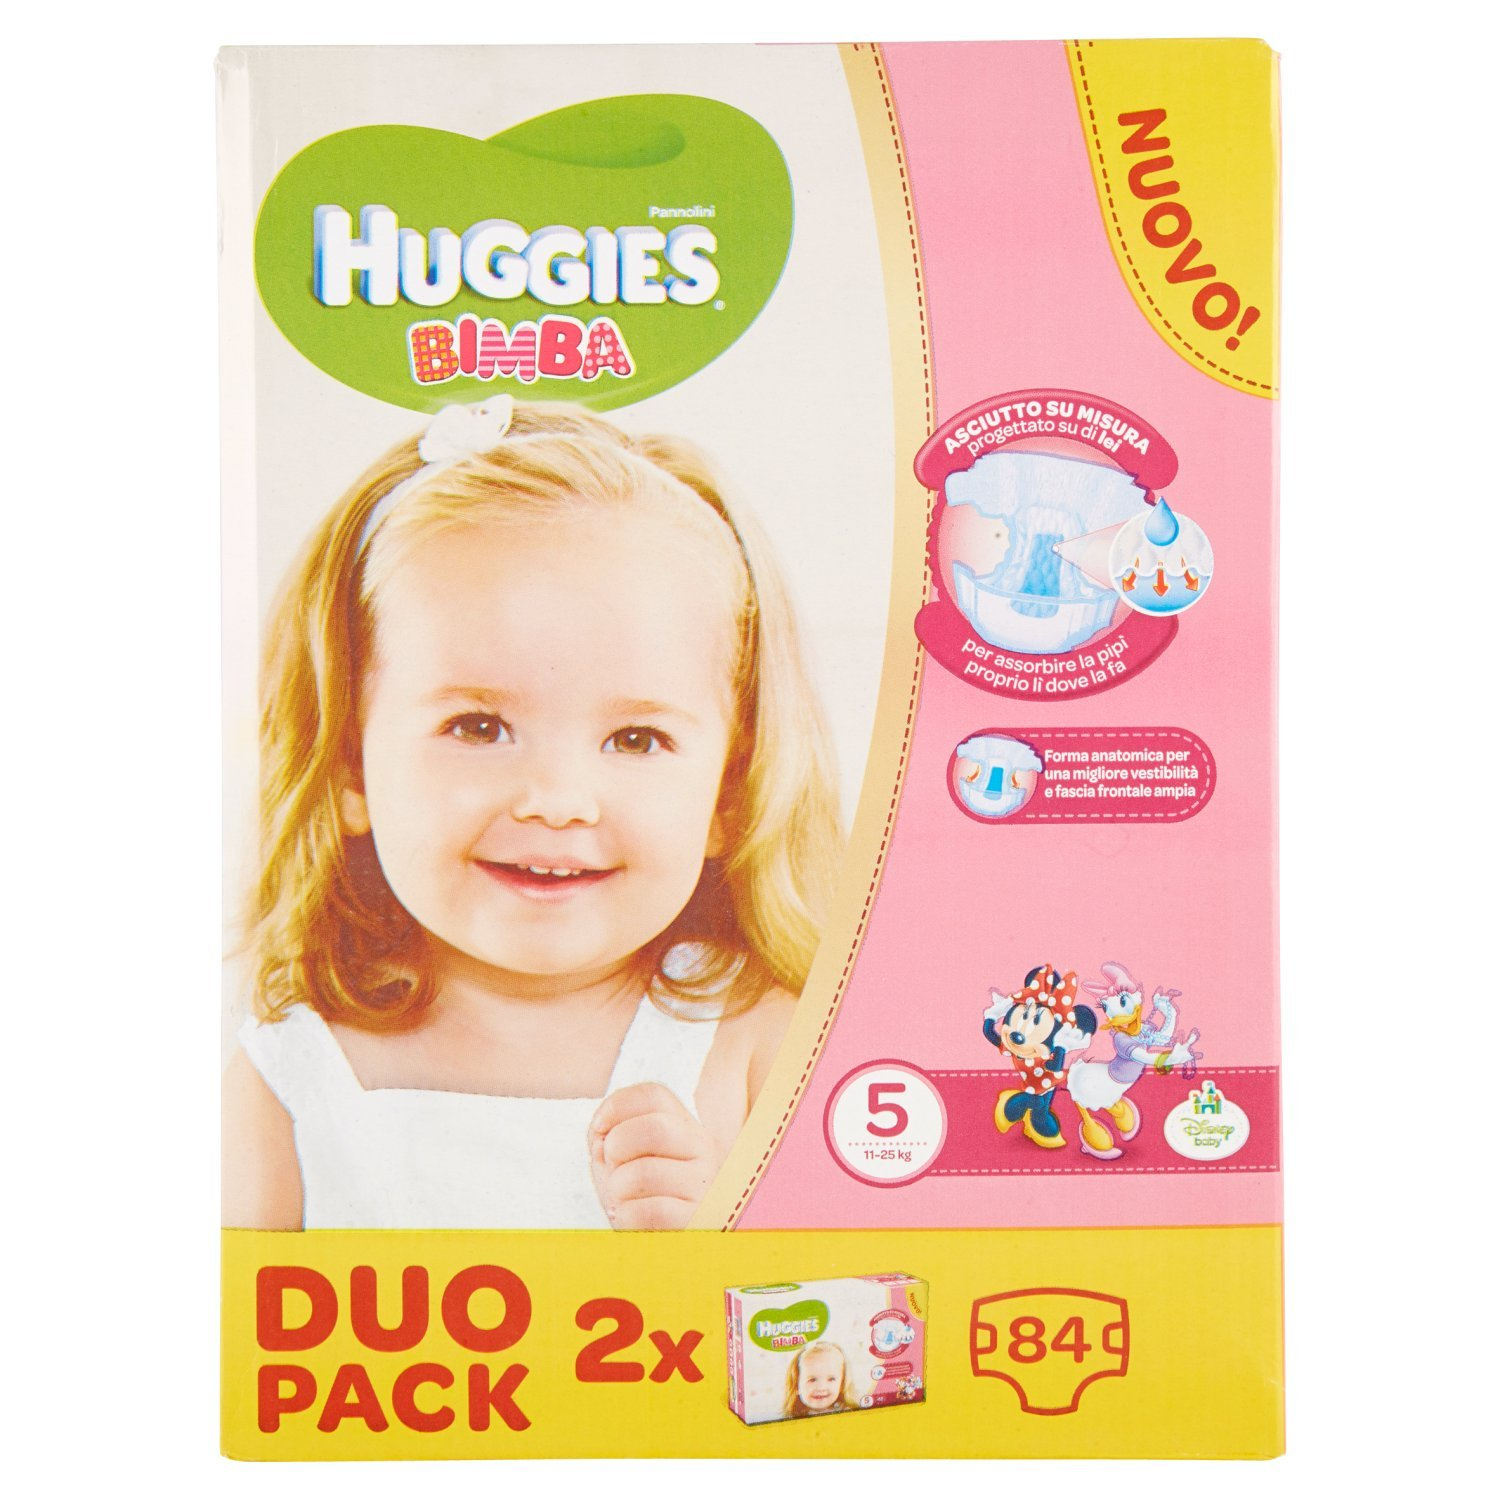 Huggies - Bimba - Nappies - Size 5 (12-18 kg) - 2 x 42 Nappies Kimberly Clark 02565821